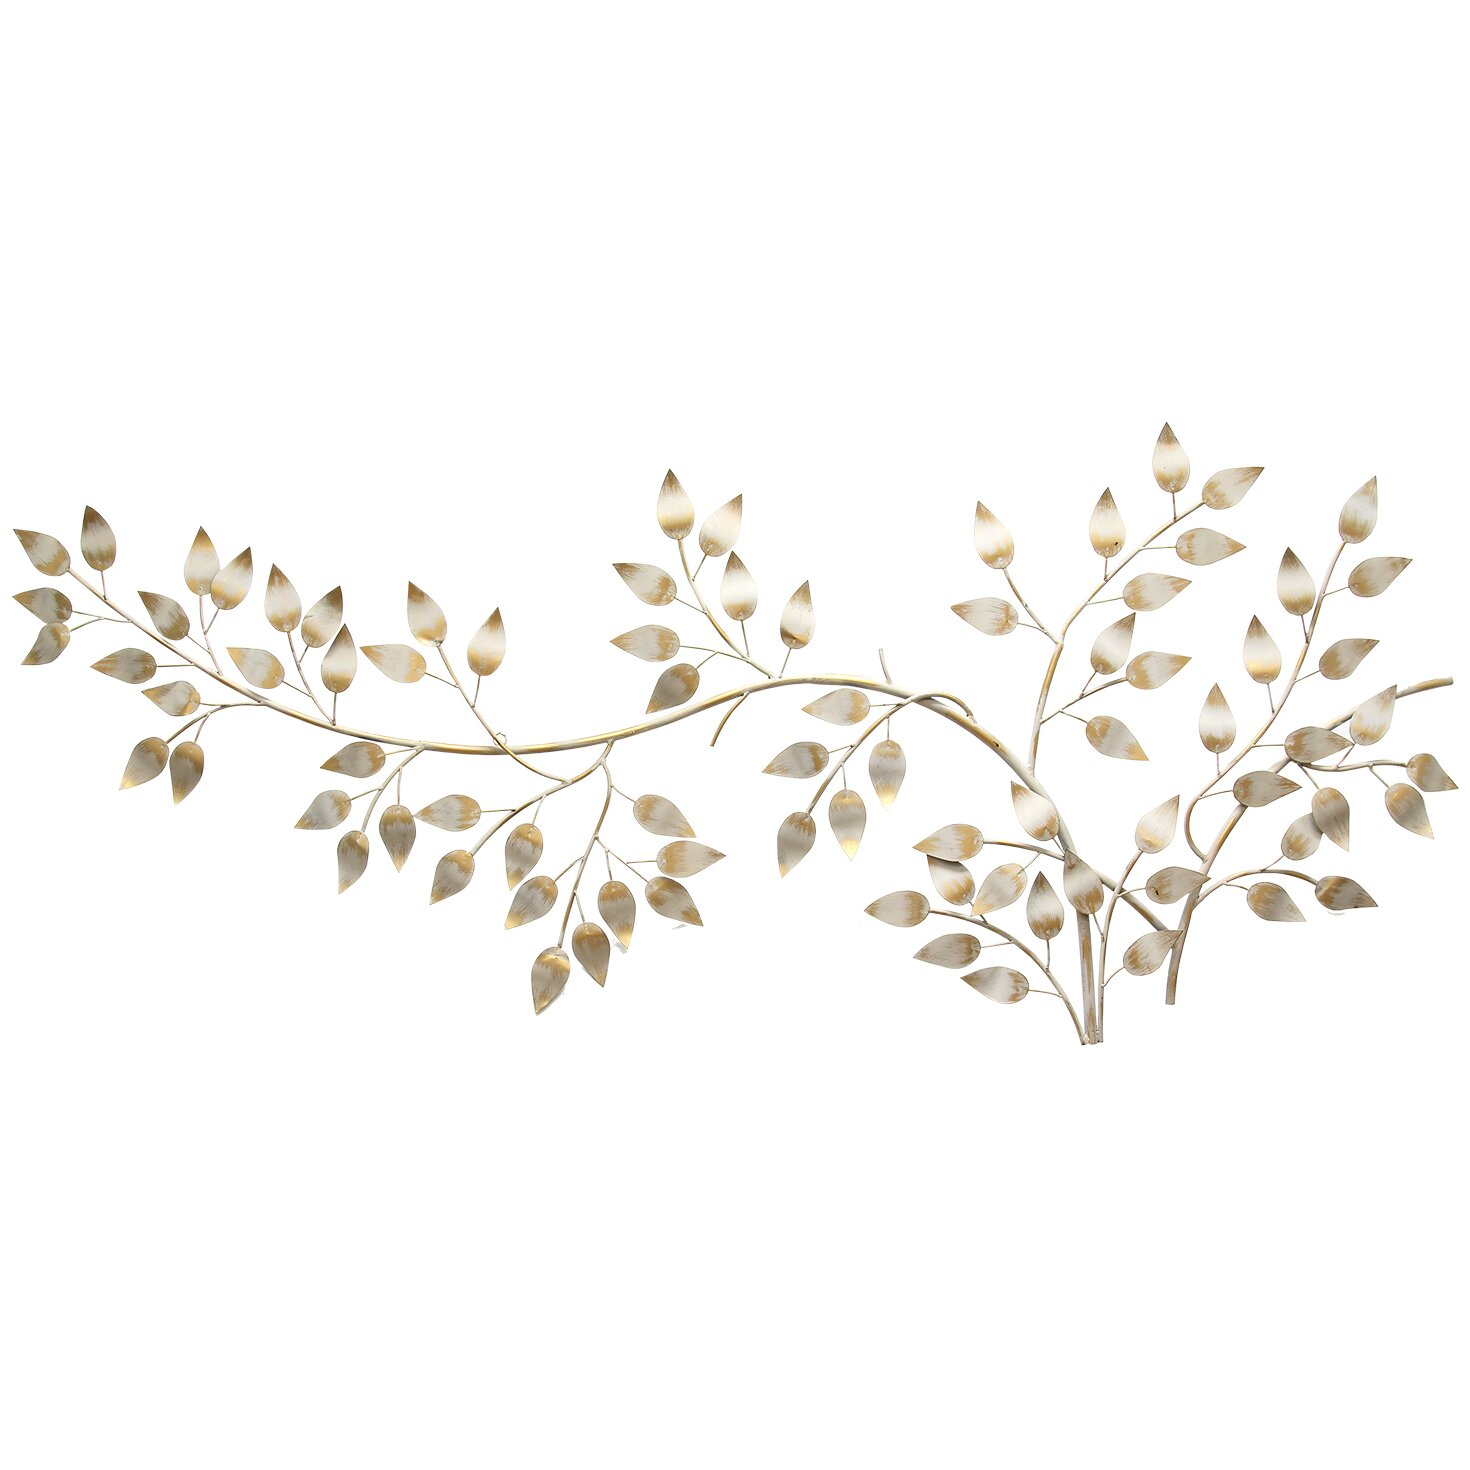 Stratton Home Decor Flowing Leaves Wall Du0026eacute;cor